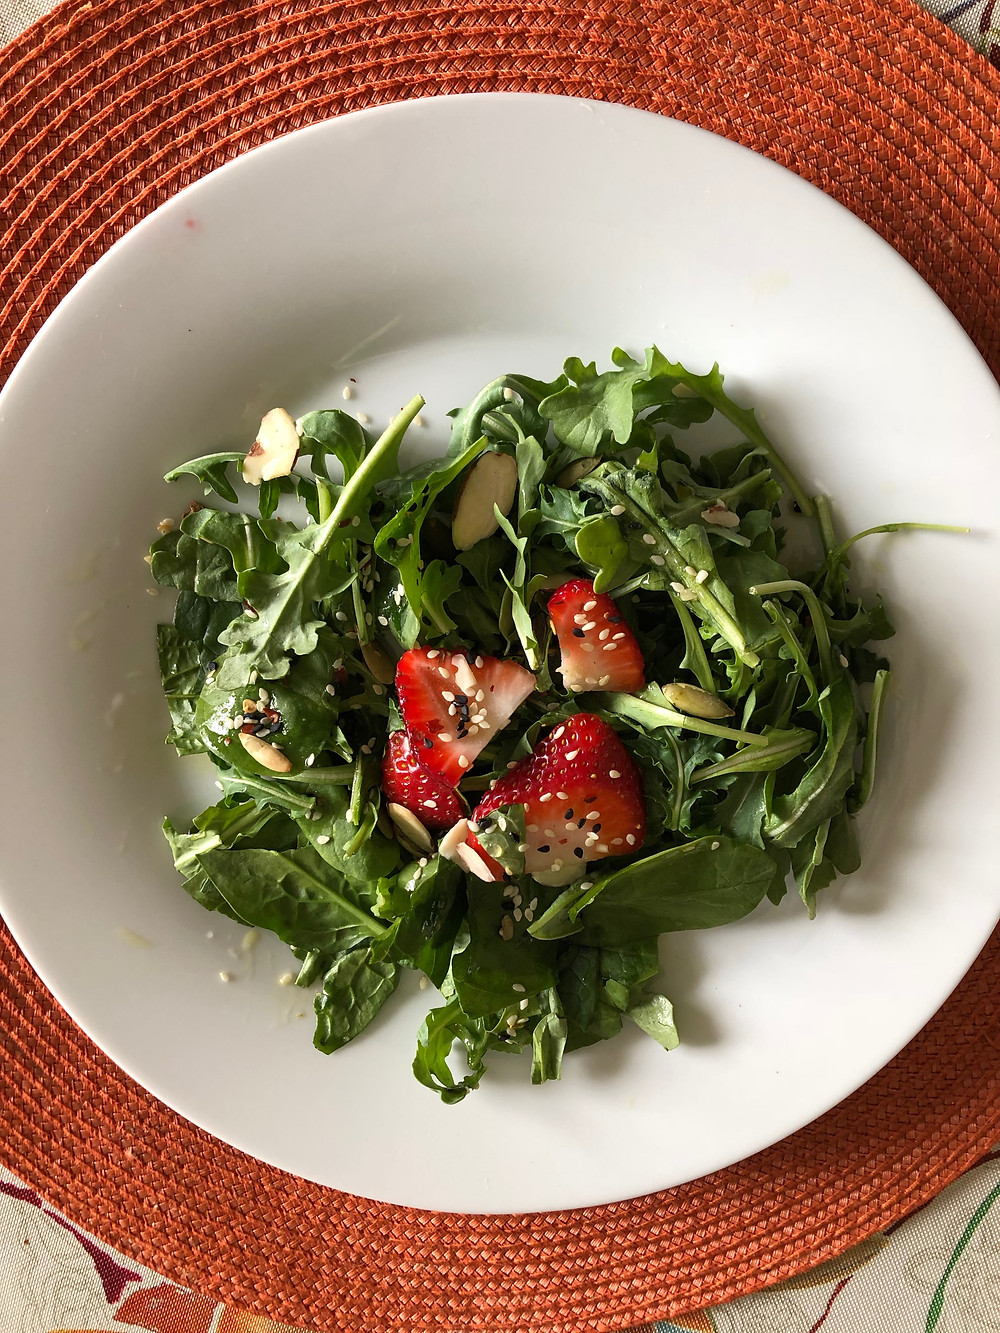 Salad with strawberries on plate of greens